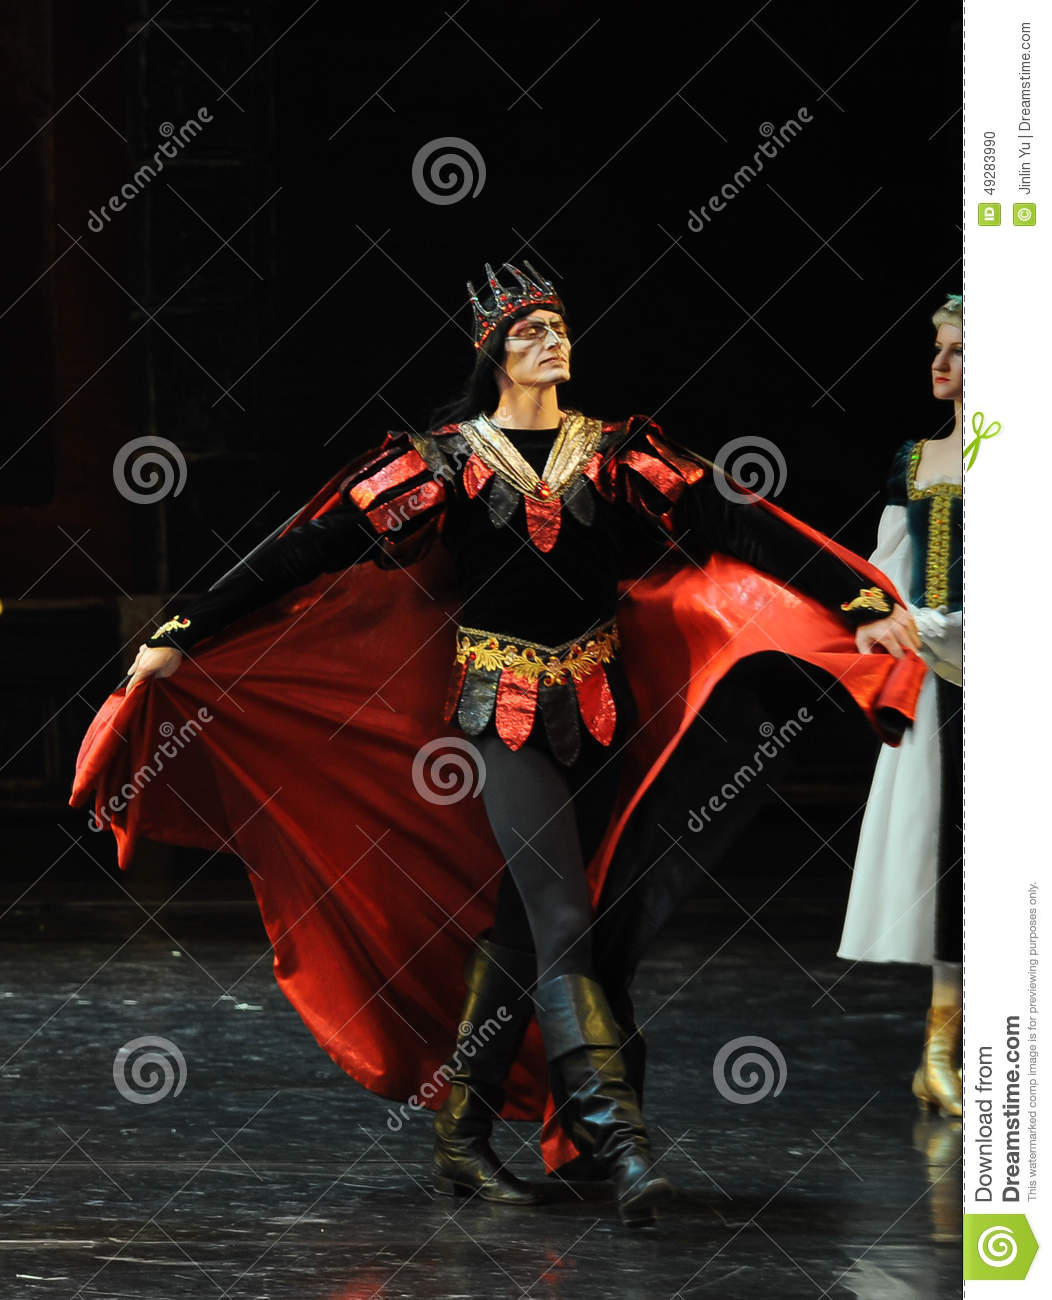 The Devil Rothbart-The Prince Adult Ceremony-ballet Swan